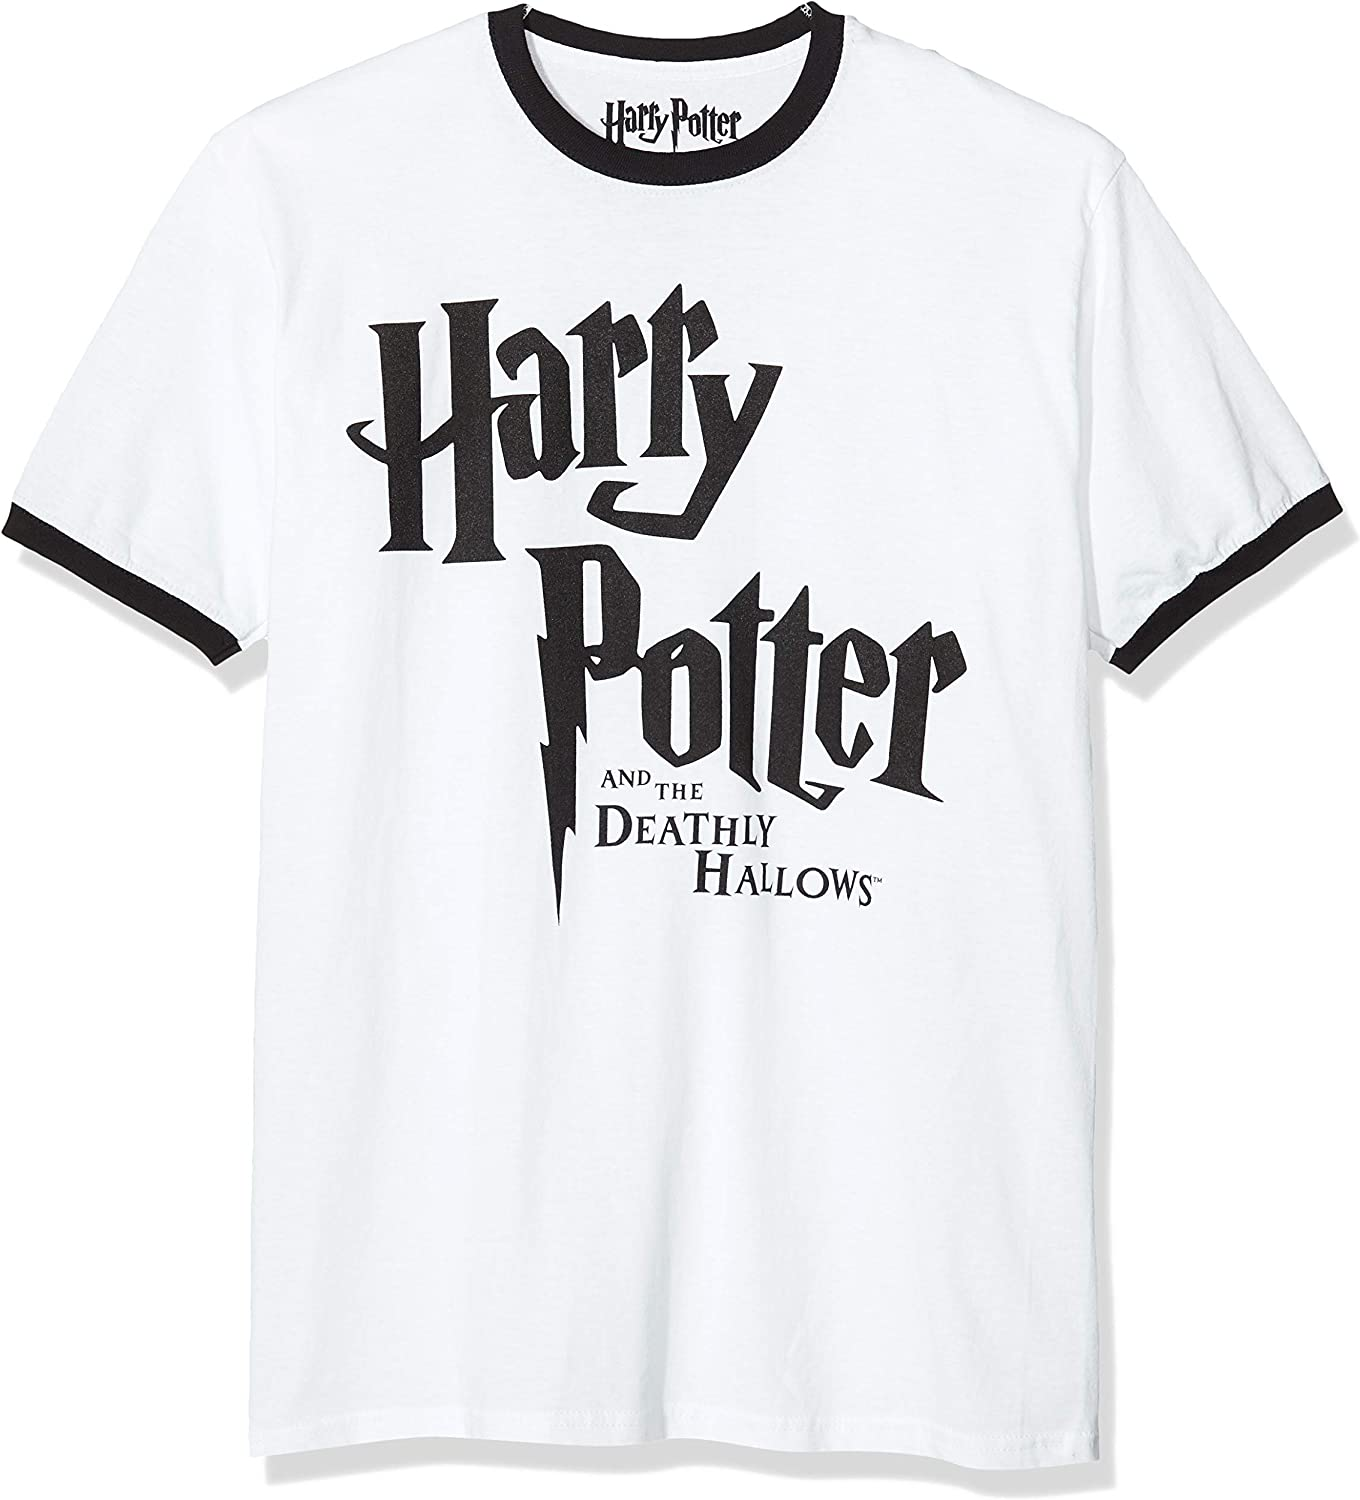 ICONIC COLLECTION - HARRY POTTER Deathly Hallows Camiseta para Hombre: Amazon.es: Ropa y accesorios